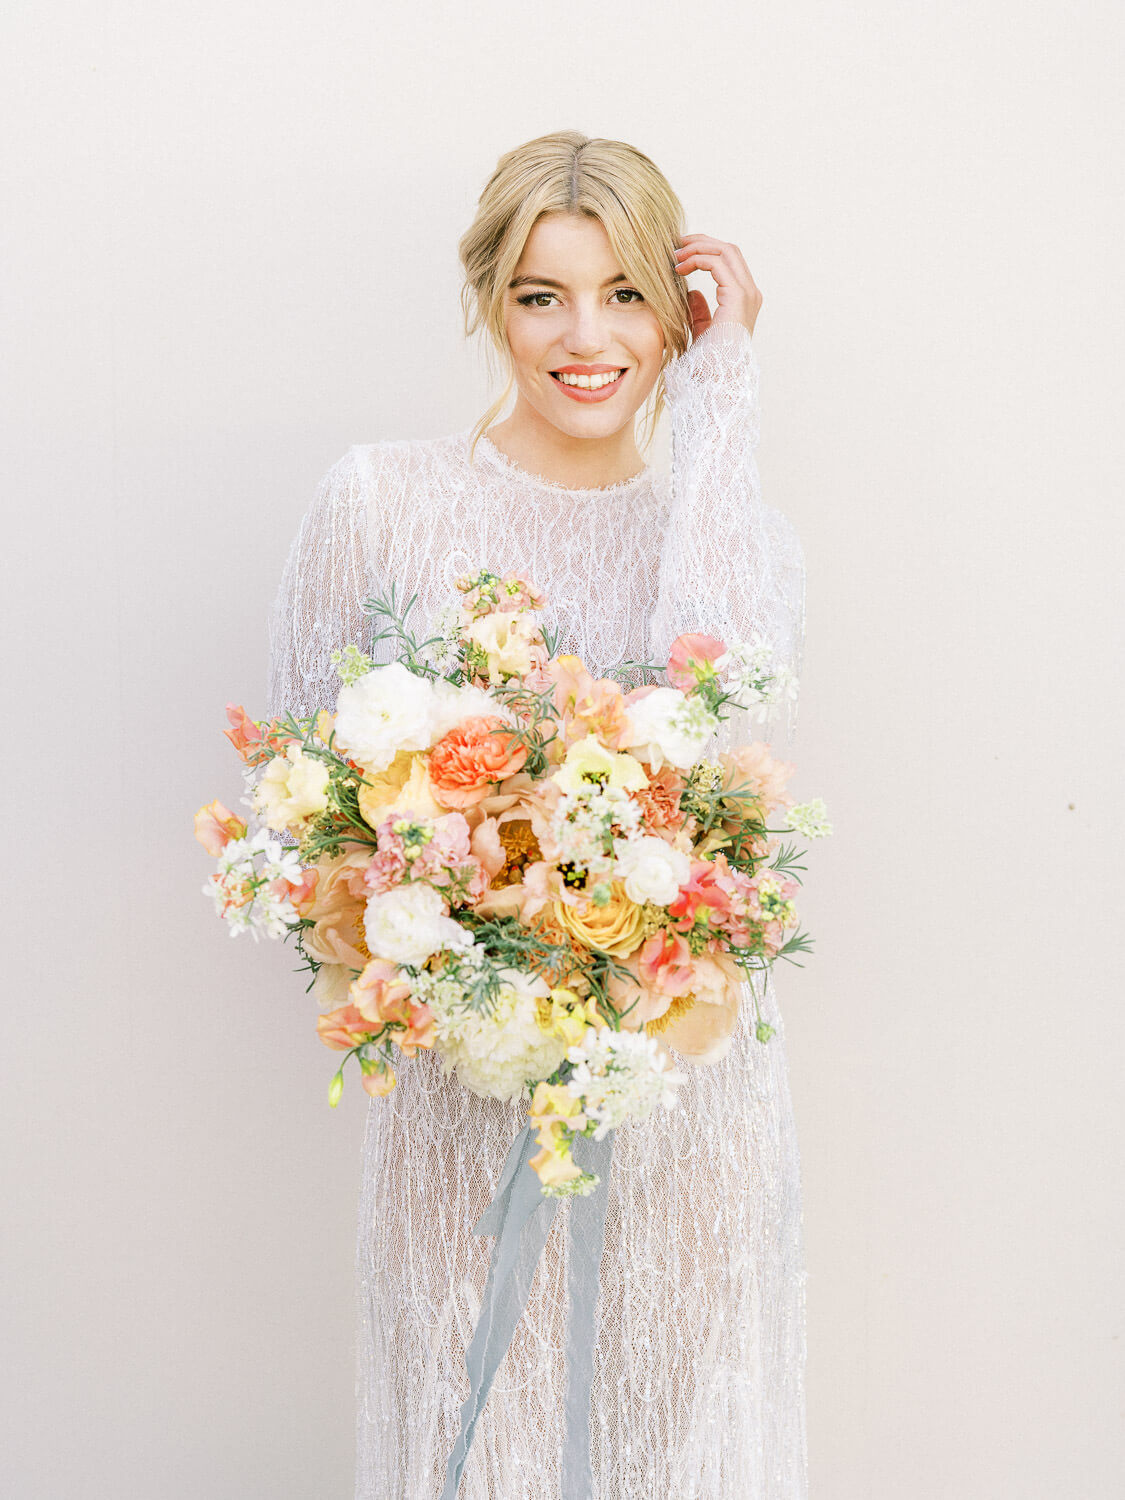 Athens best florists for weddings